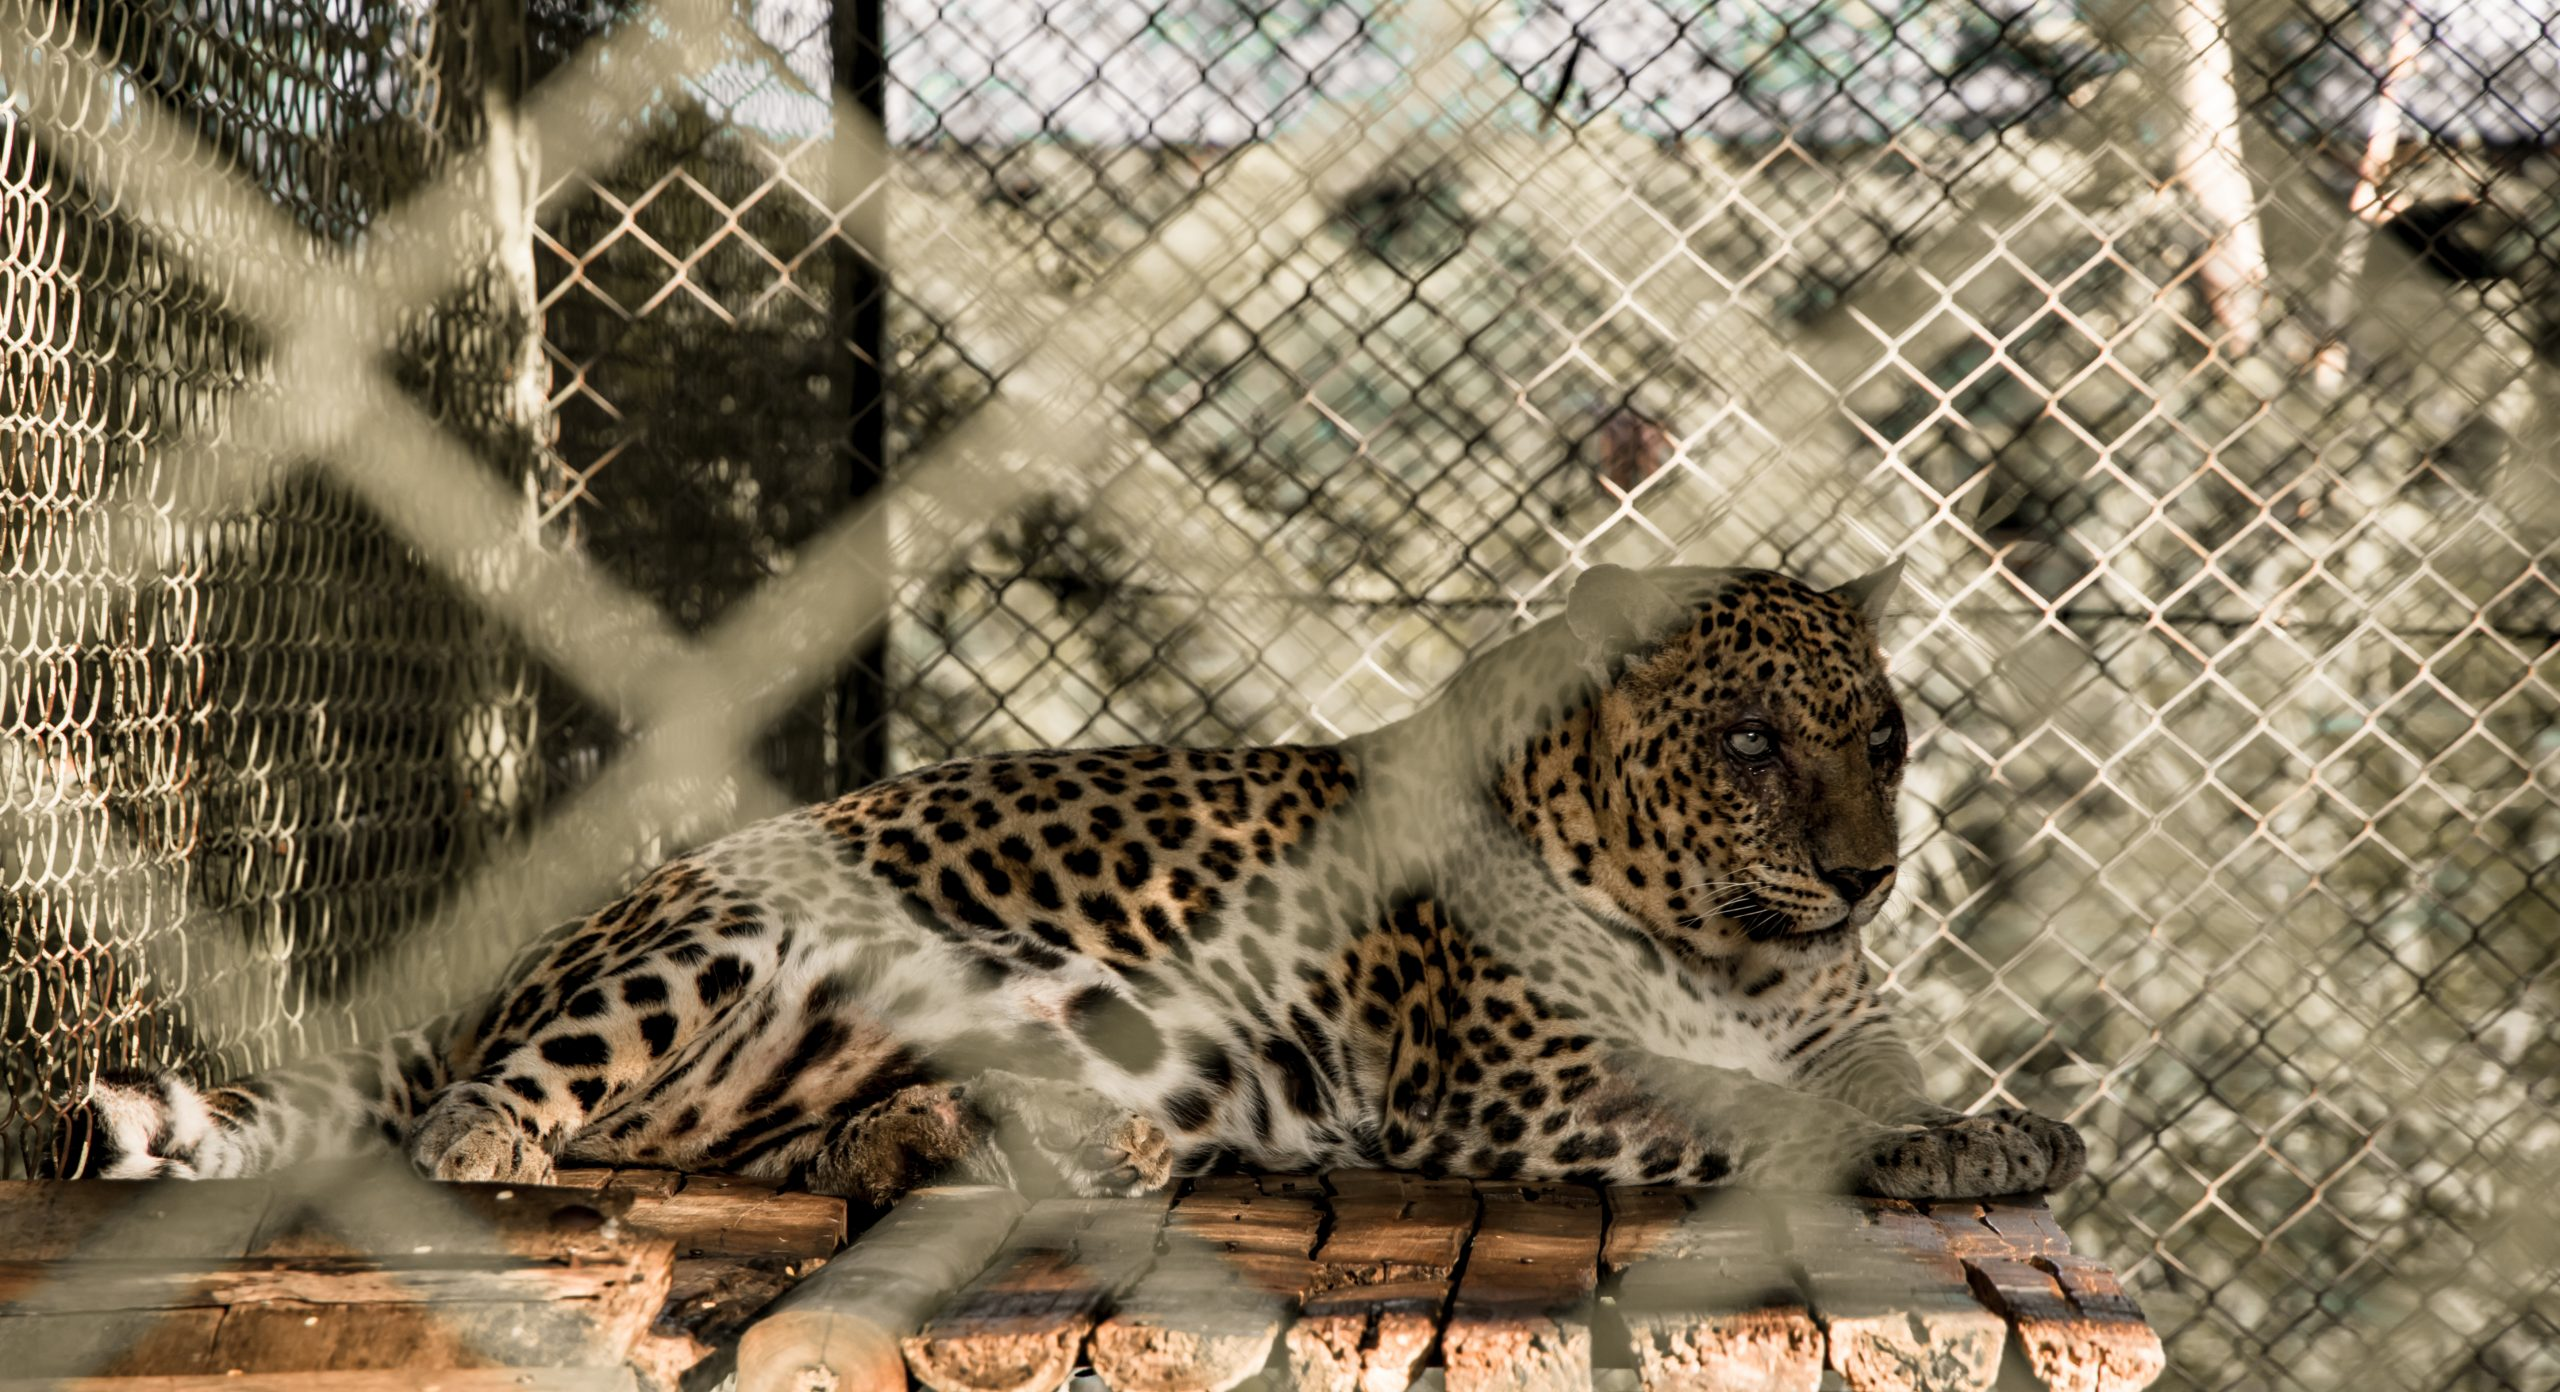 in cage at zoo